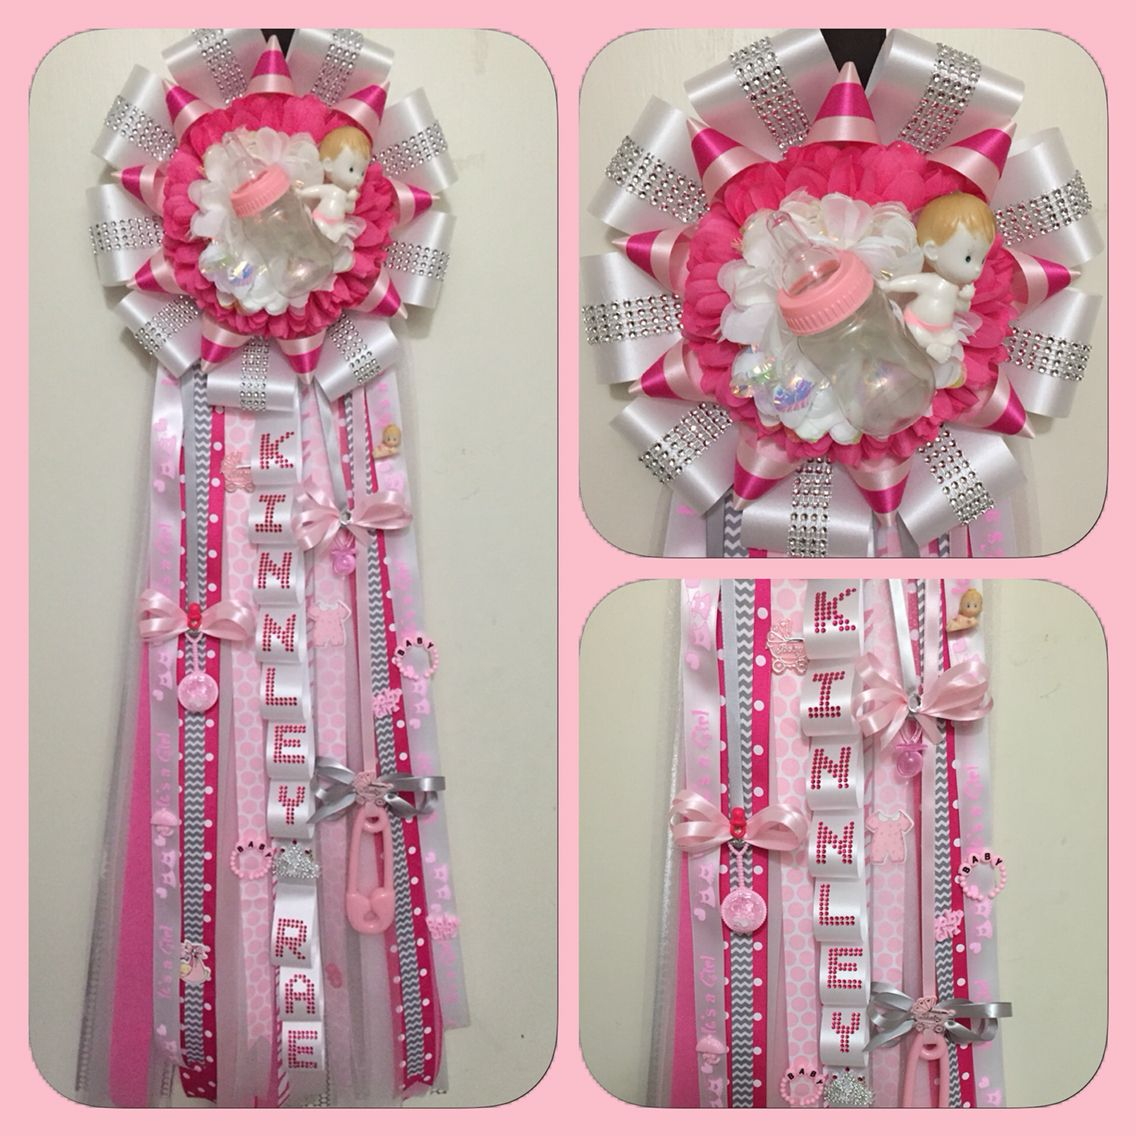 Mums Baby Shower: Baby's Mum For Hospital Door By Gina